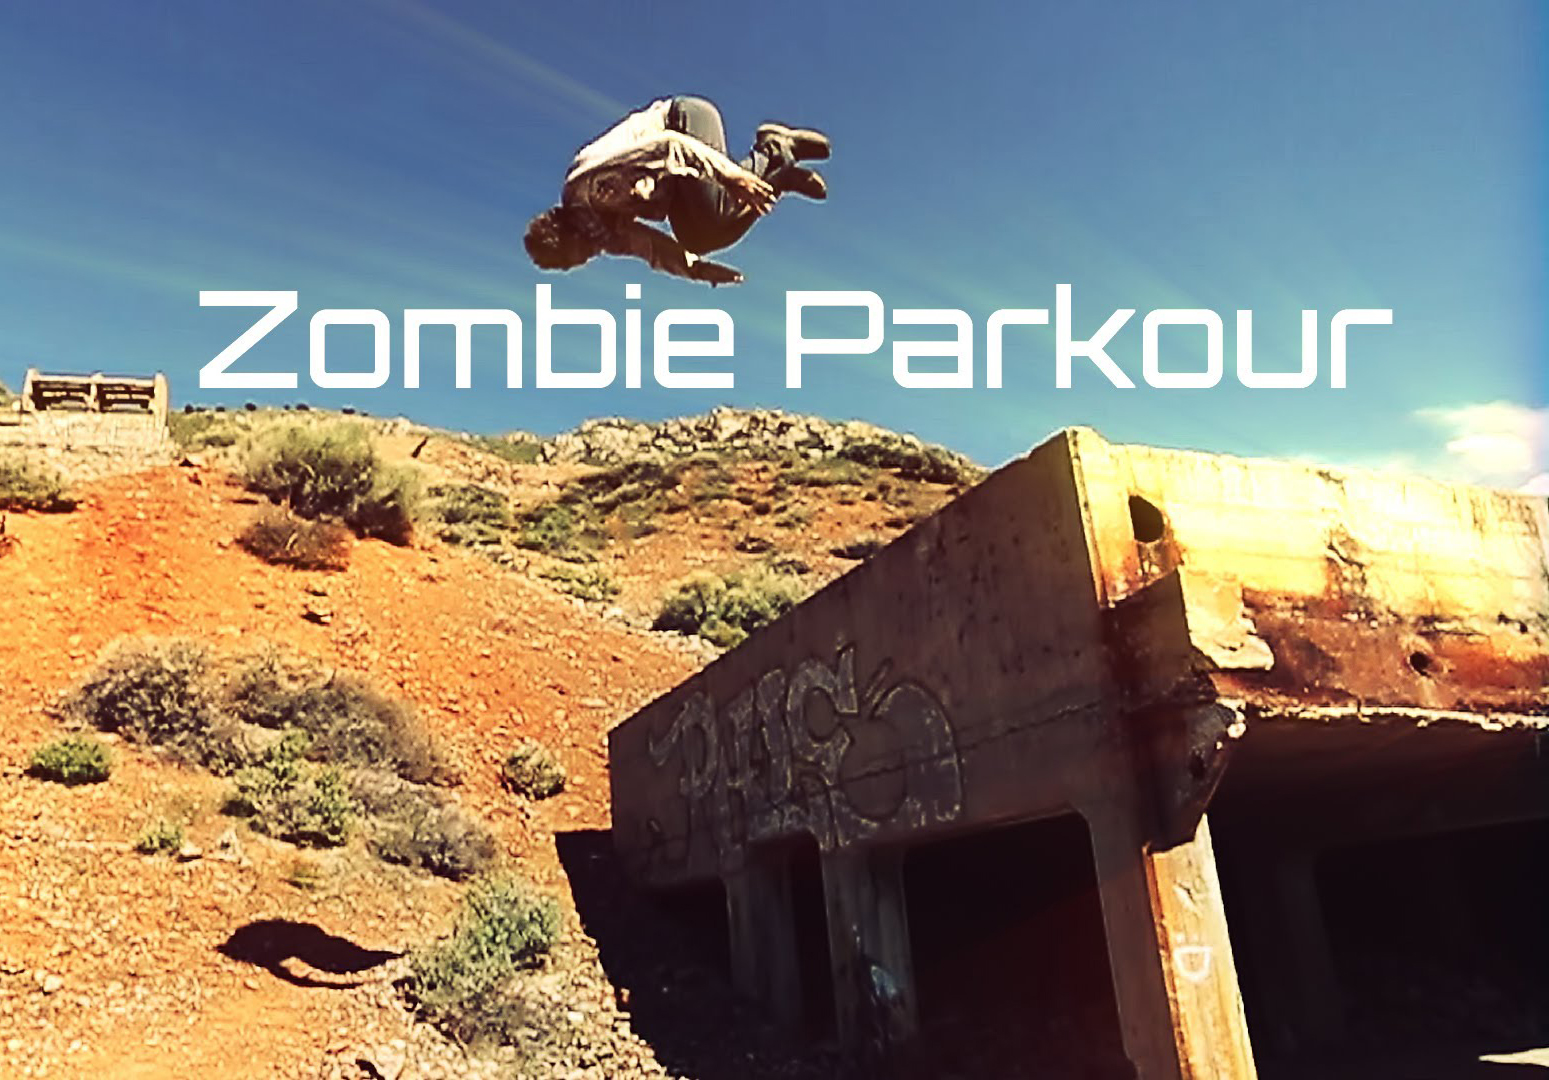 WATCH Zombie Parkour - The Flipping Dead: Zombie of the Week